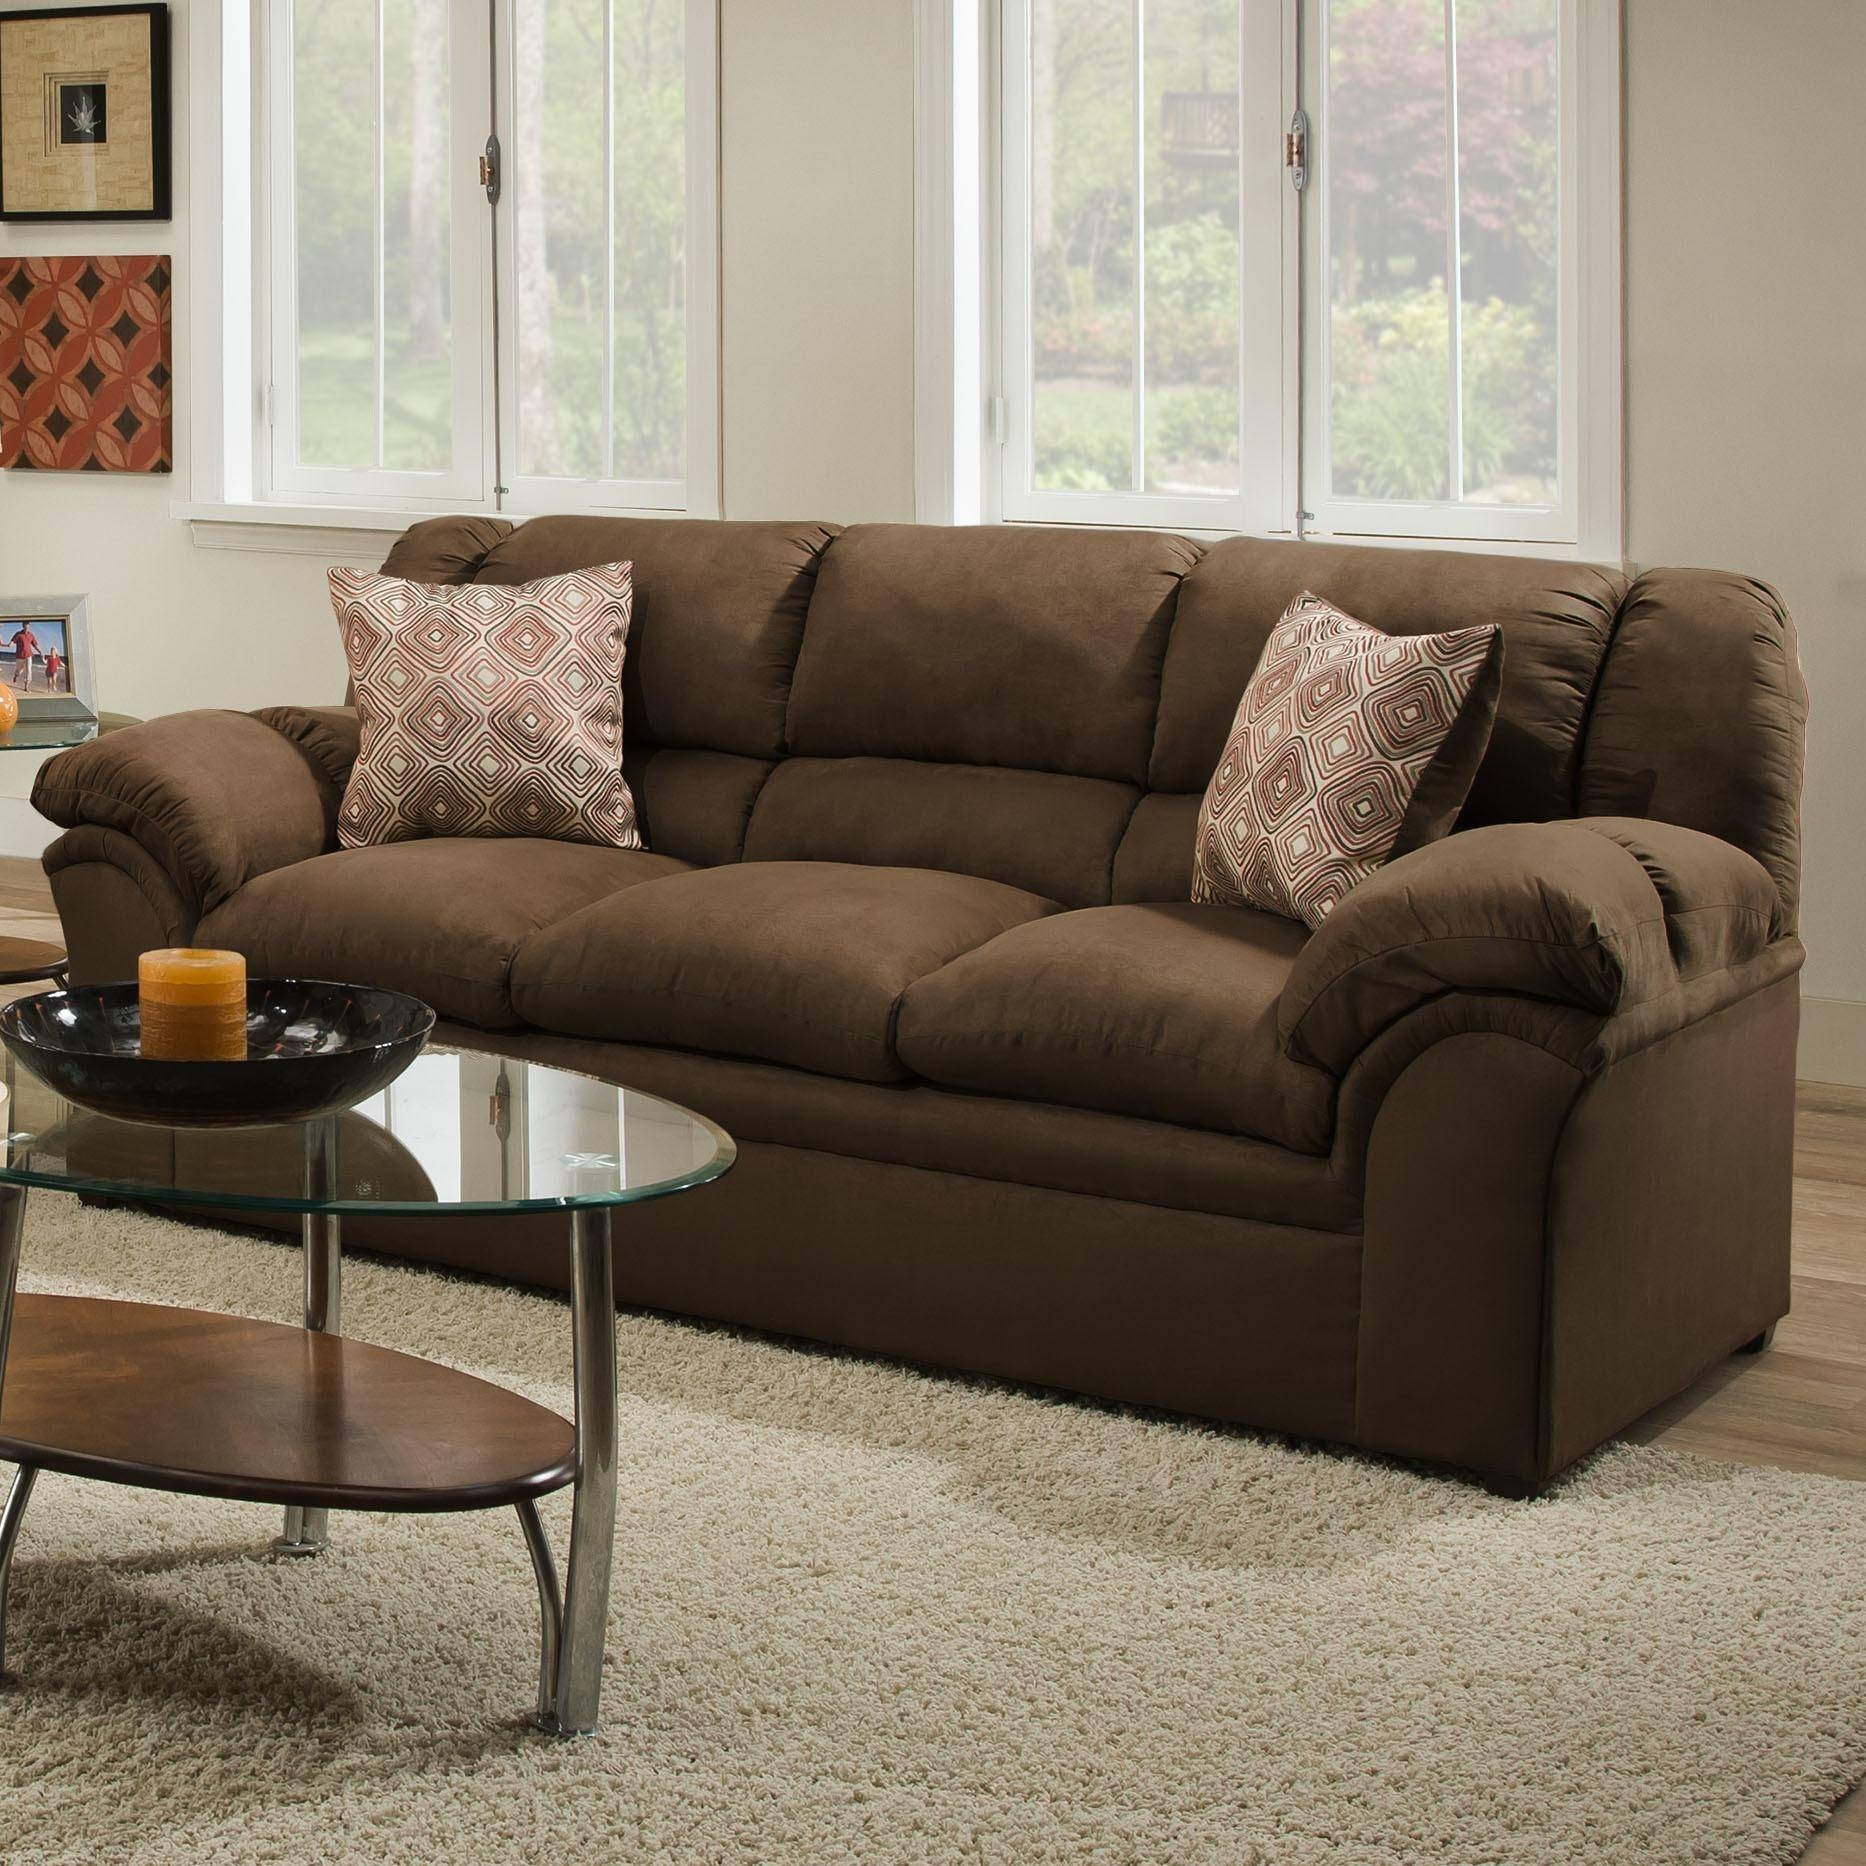 20+ Choices Of Simmons Microfiber Sofas | Sofa Ideas pertaining to Simmons Microfiber Sofas (Image 4 of 15)